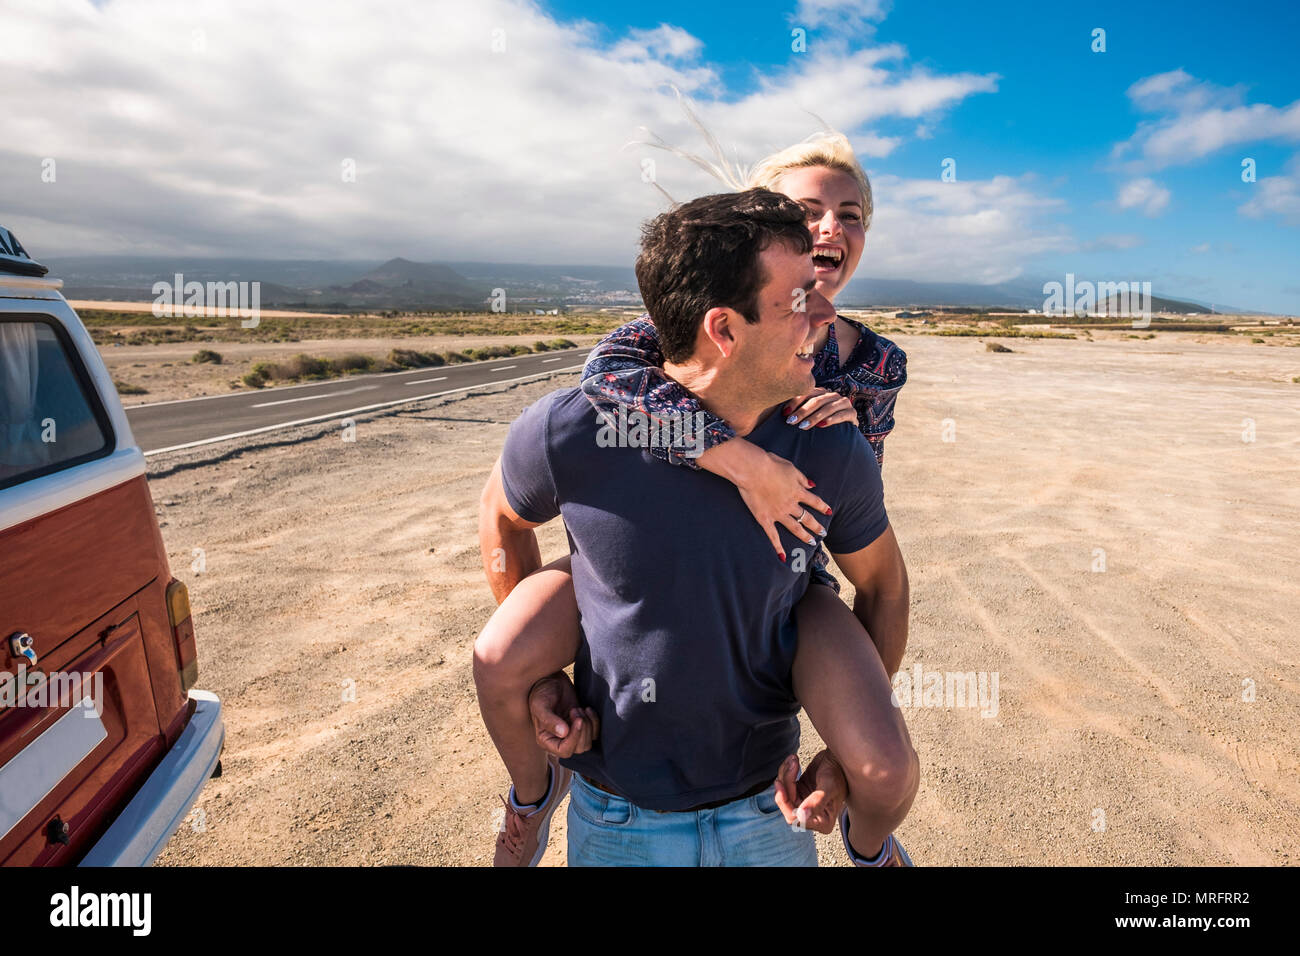 nice caucasian beautiful model couple in love play and stay together in leisure activity outdoor near a long road crossing the desert in a long trip v - Stock Image